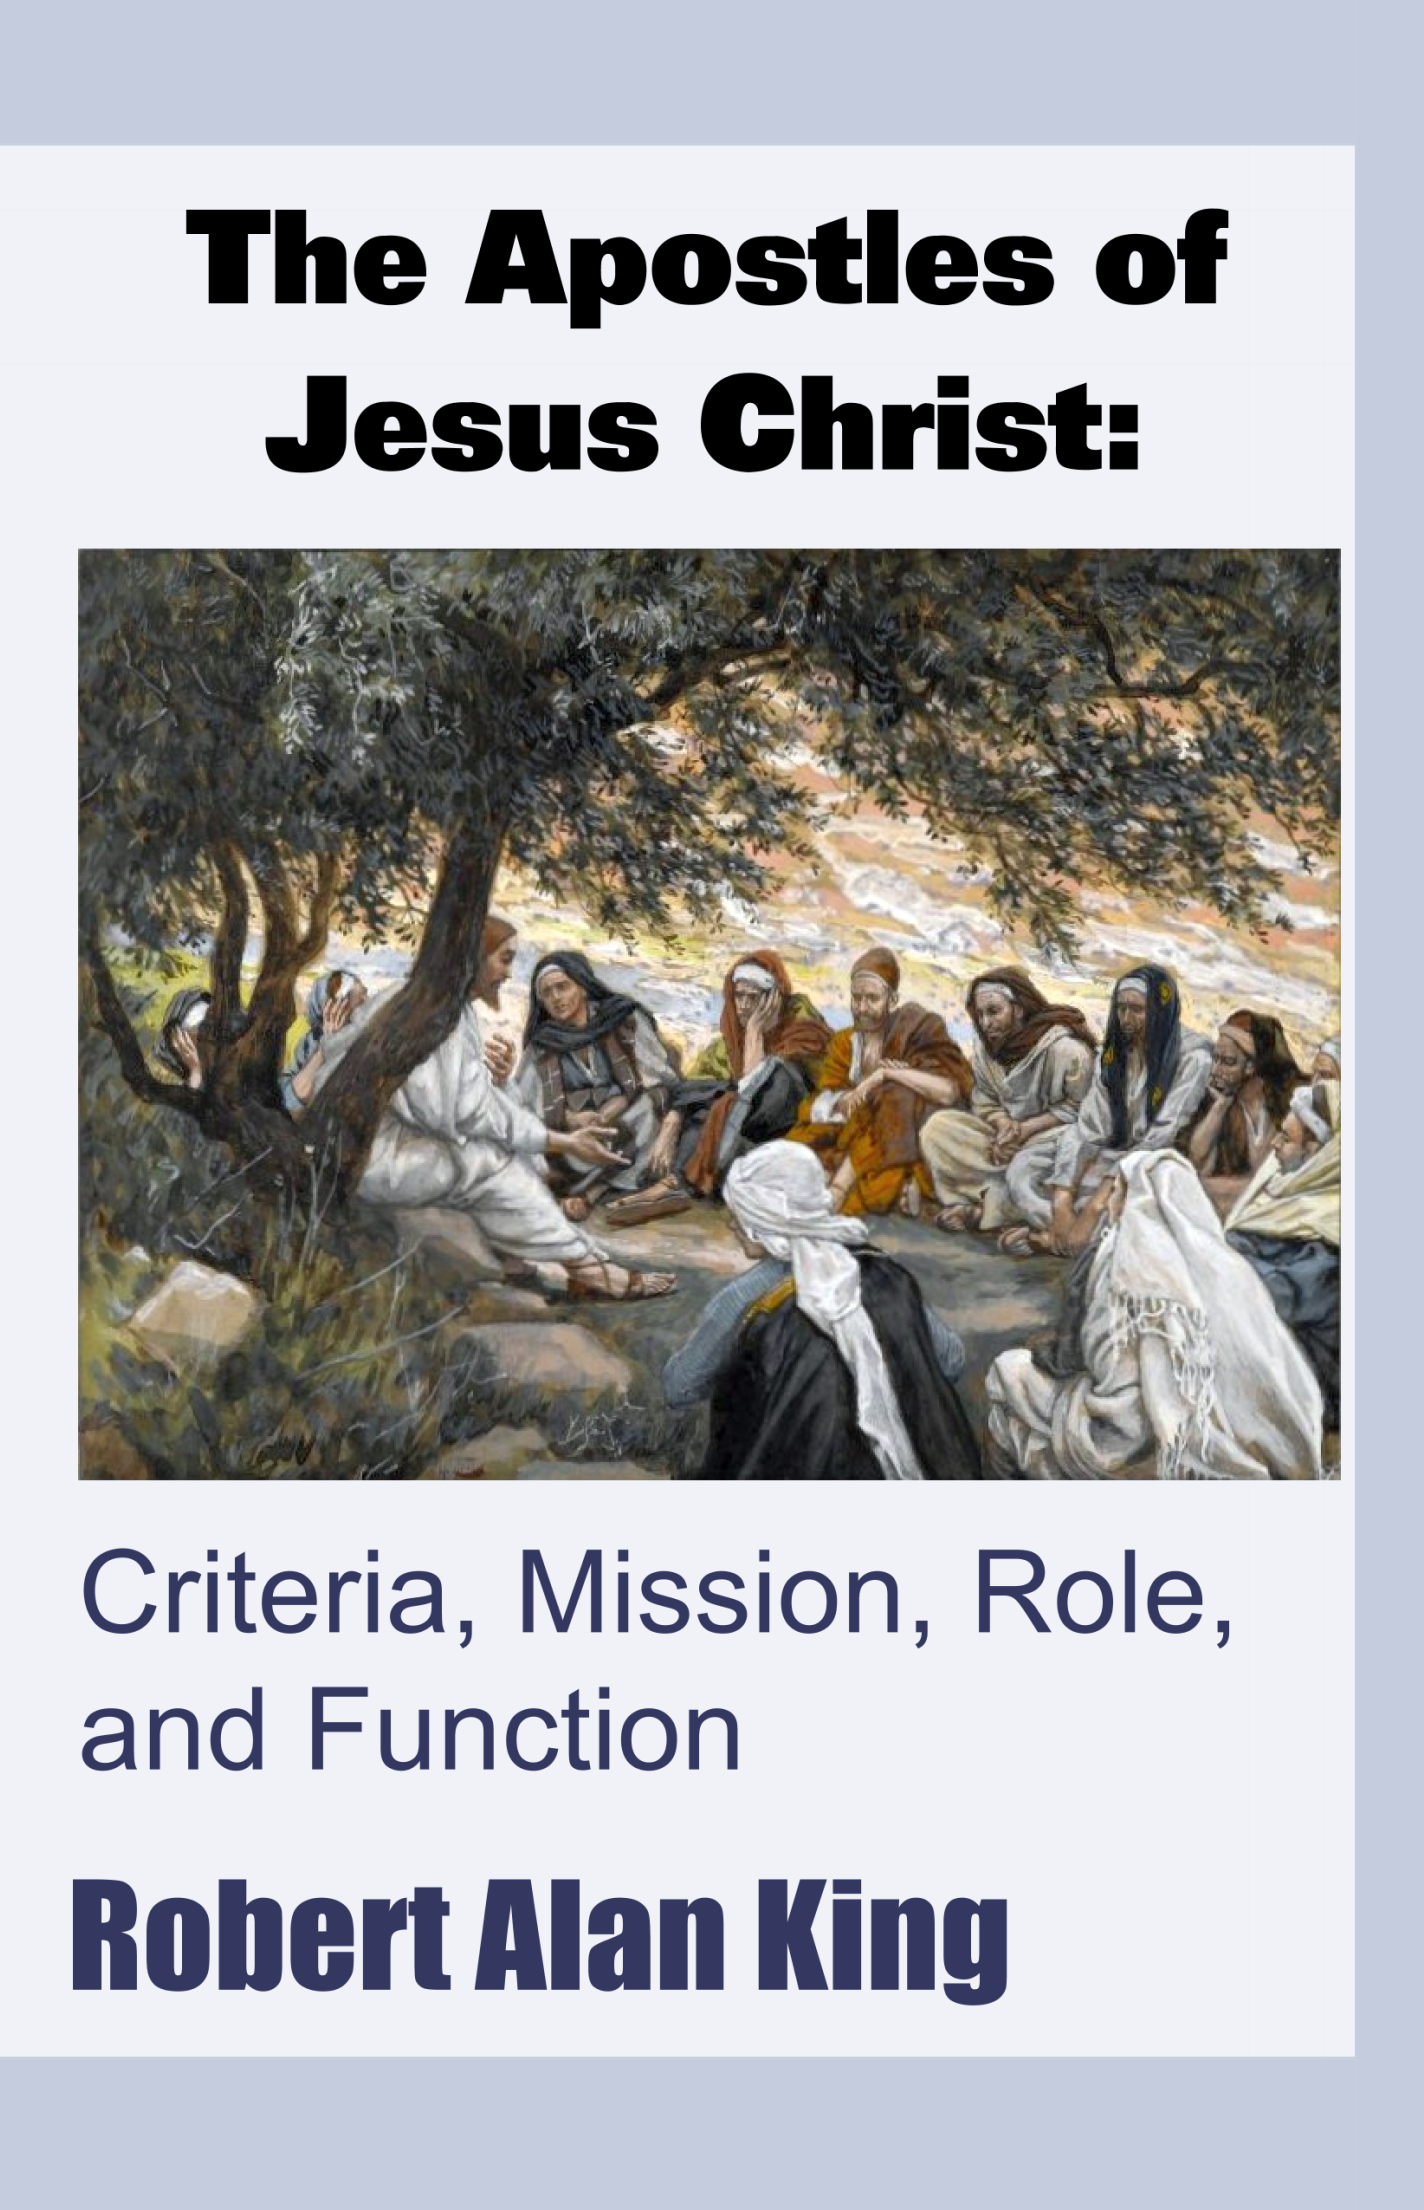 The Apostles of Jesus Christ: Criteria, Mission, Role, and Function, an  Ebook by Robert Alan King